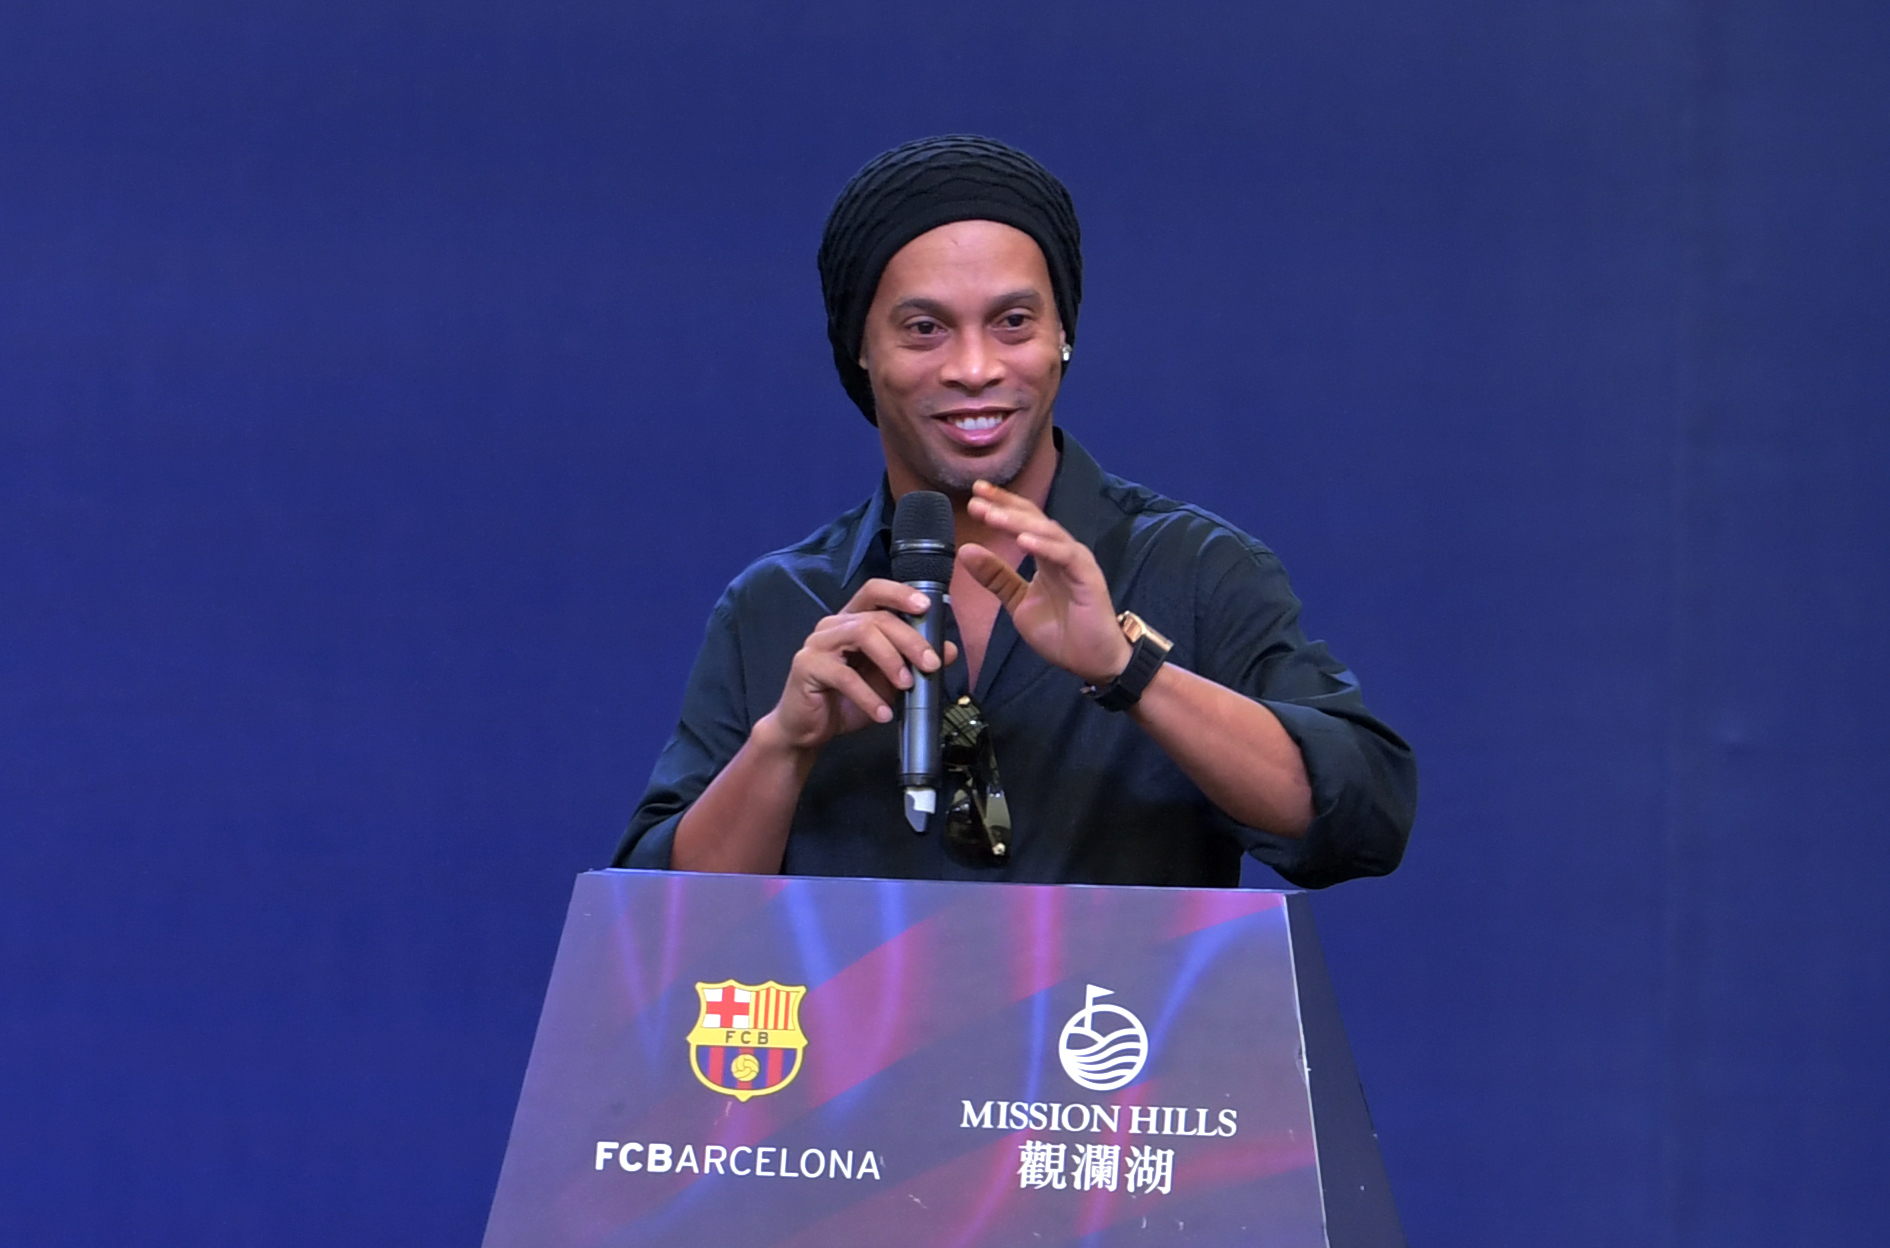 Barcelona comment on the Ronaldinho issue after his Bolsonaro support